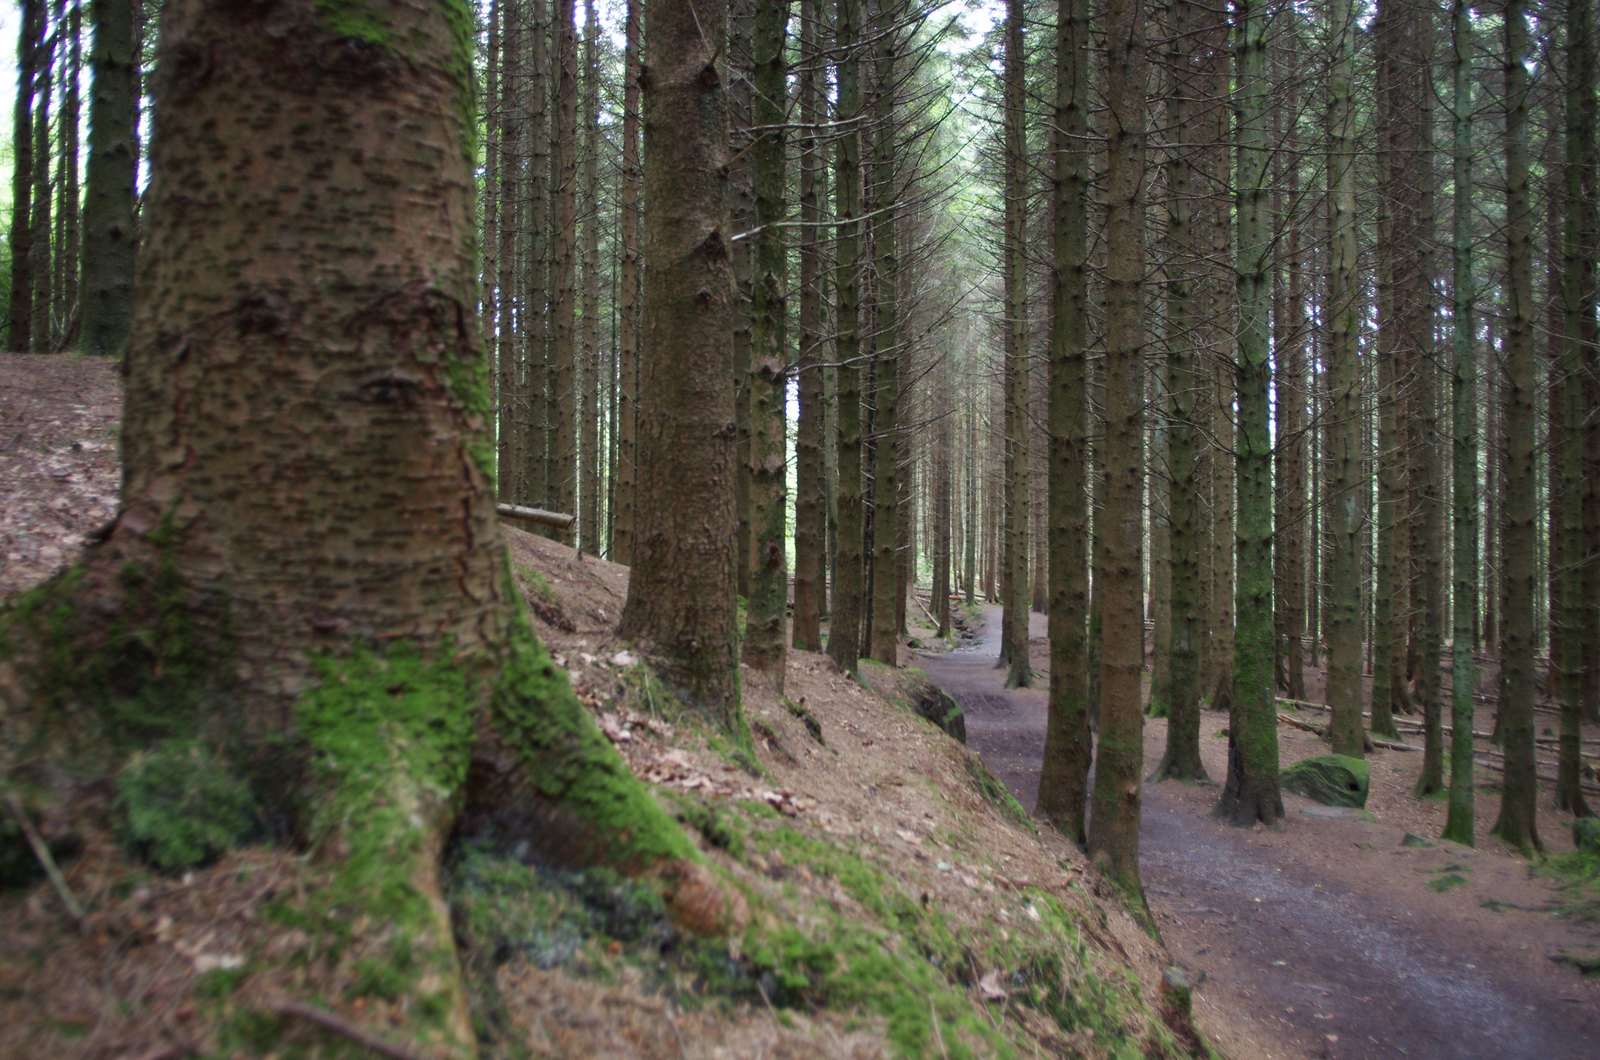 Slieve bloom mountains - into the woods